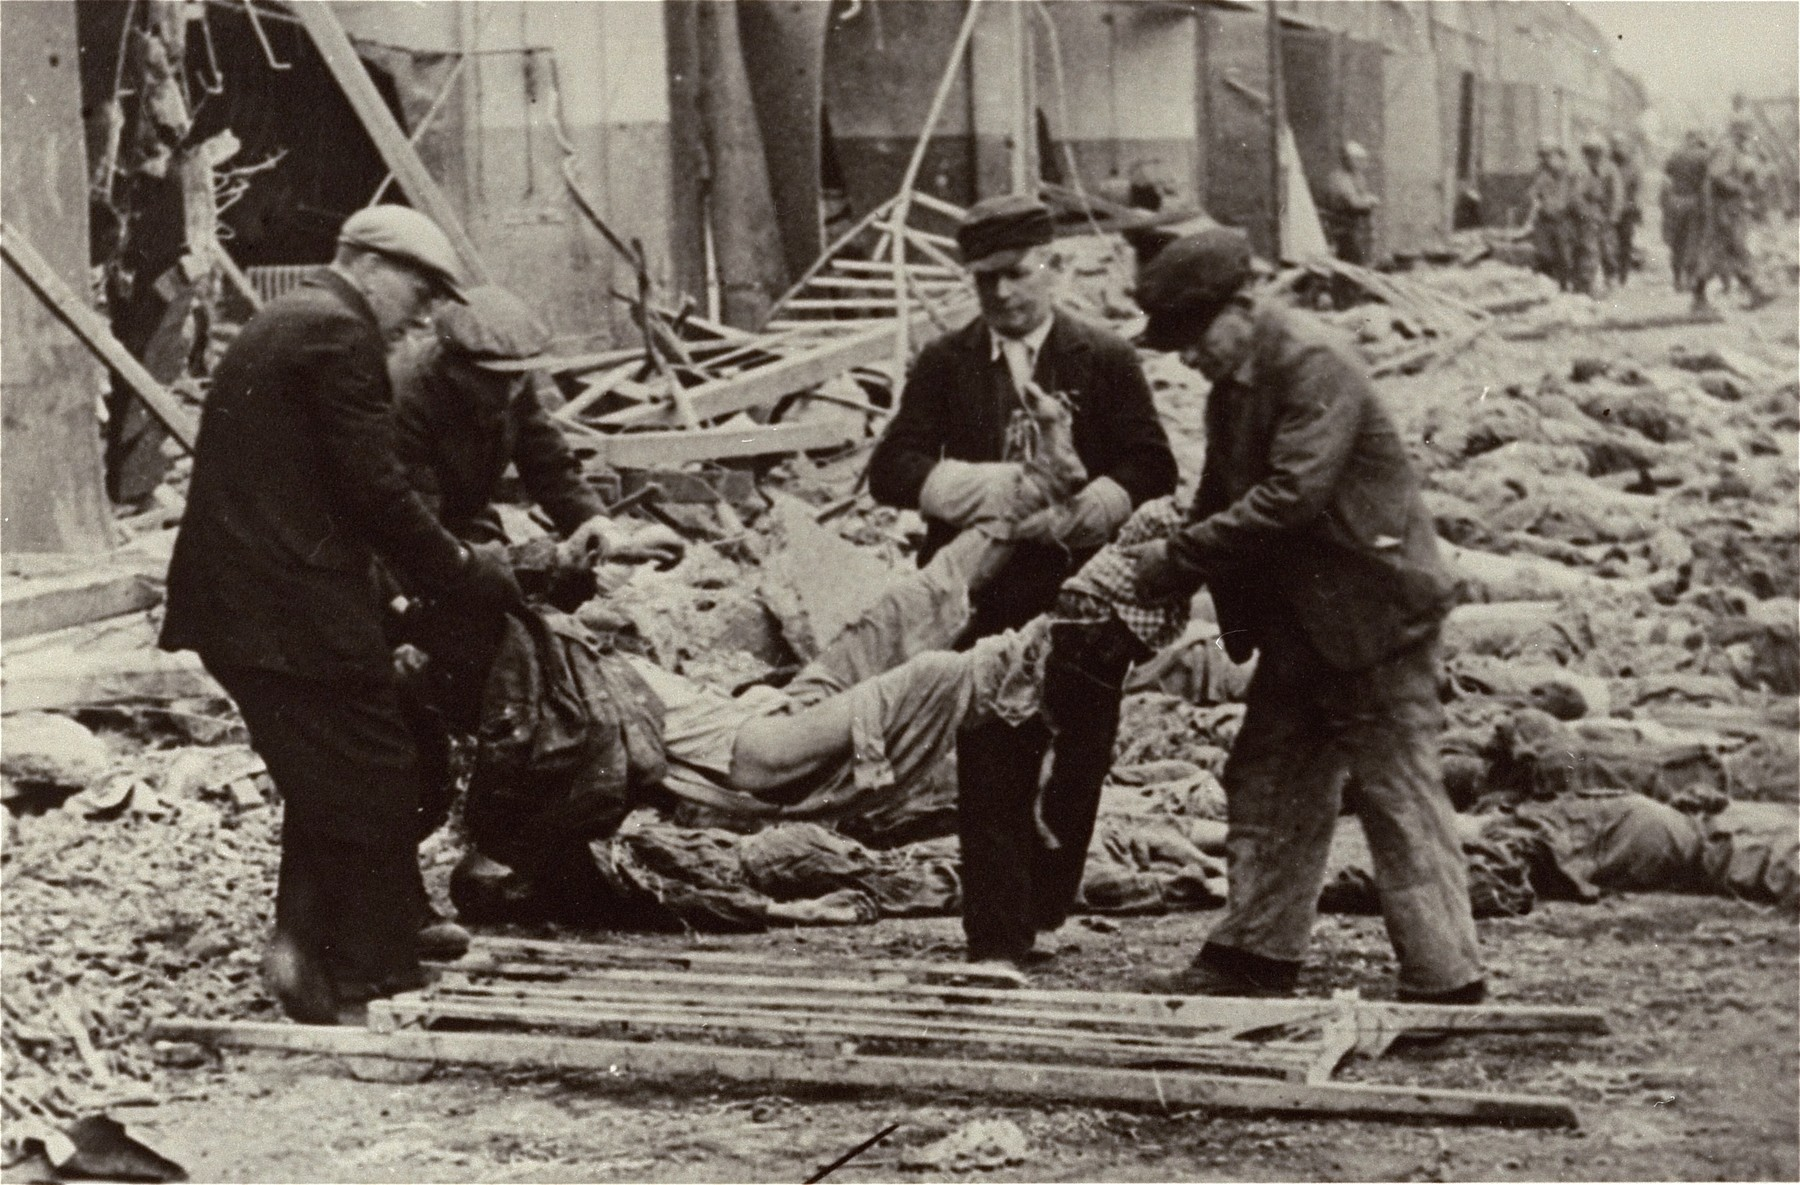 German civilians conscripted by the U.S. Army to clean the grounds of the Nordhausen concentration camp lift a corpse onto a wooden stretcher.